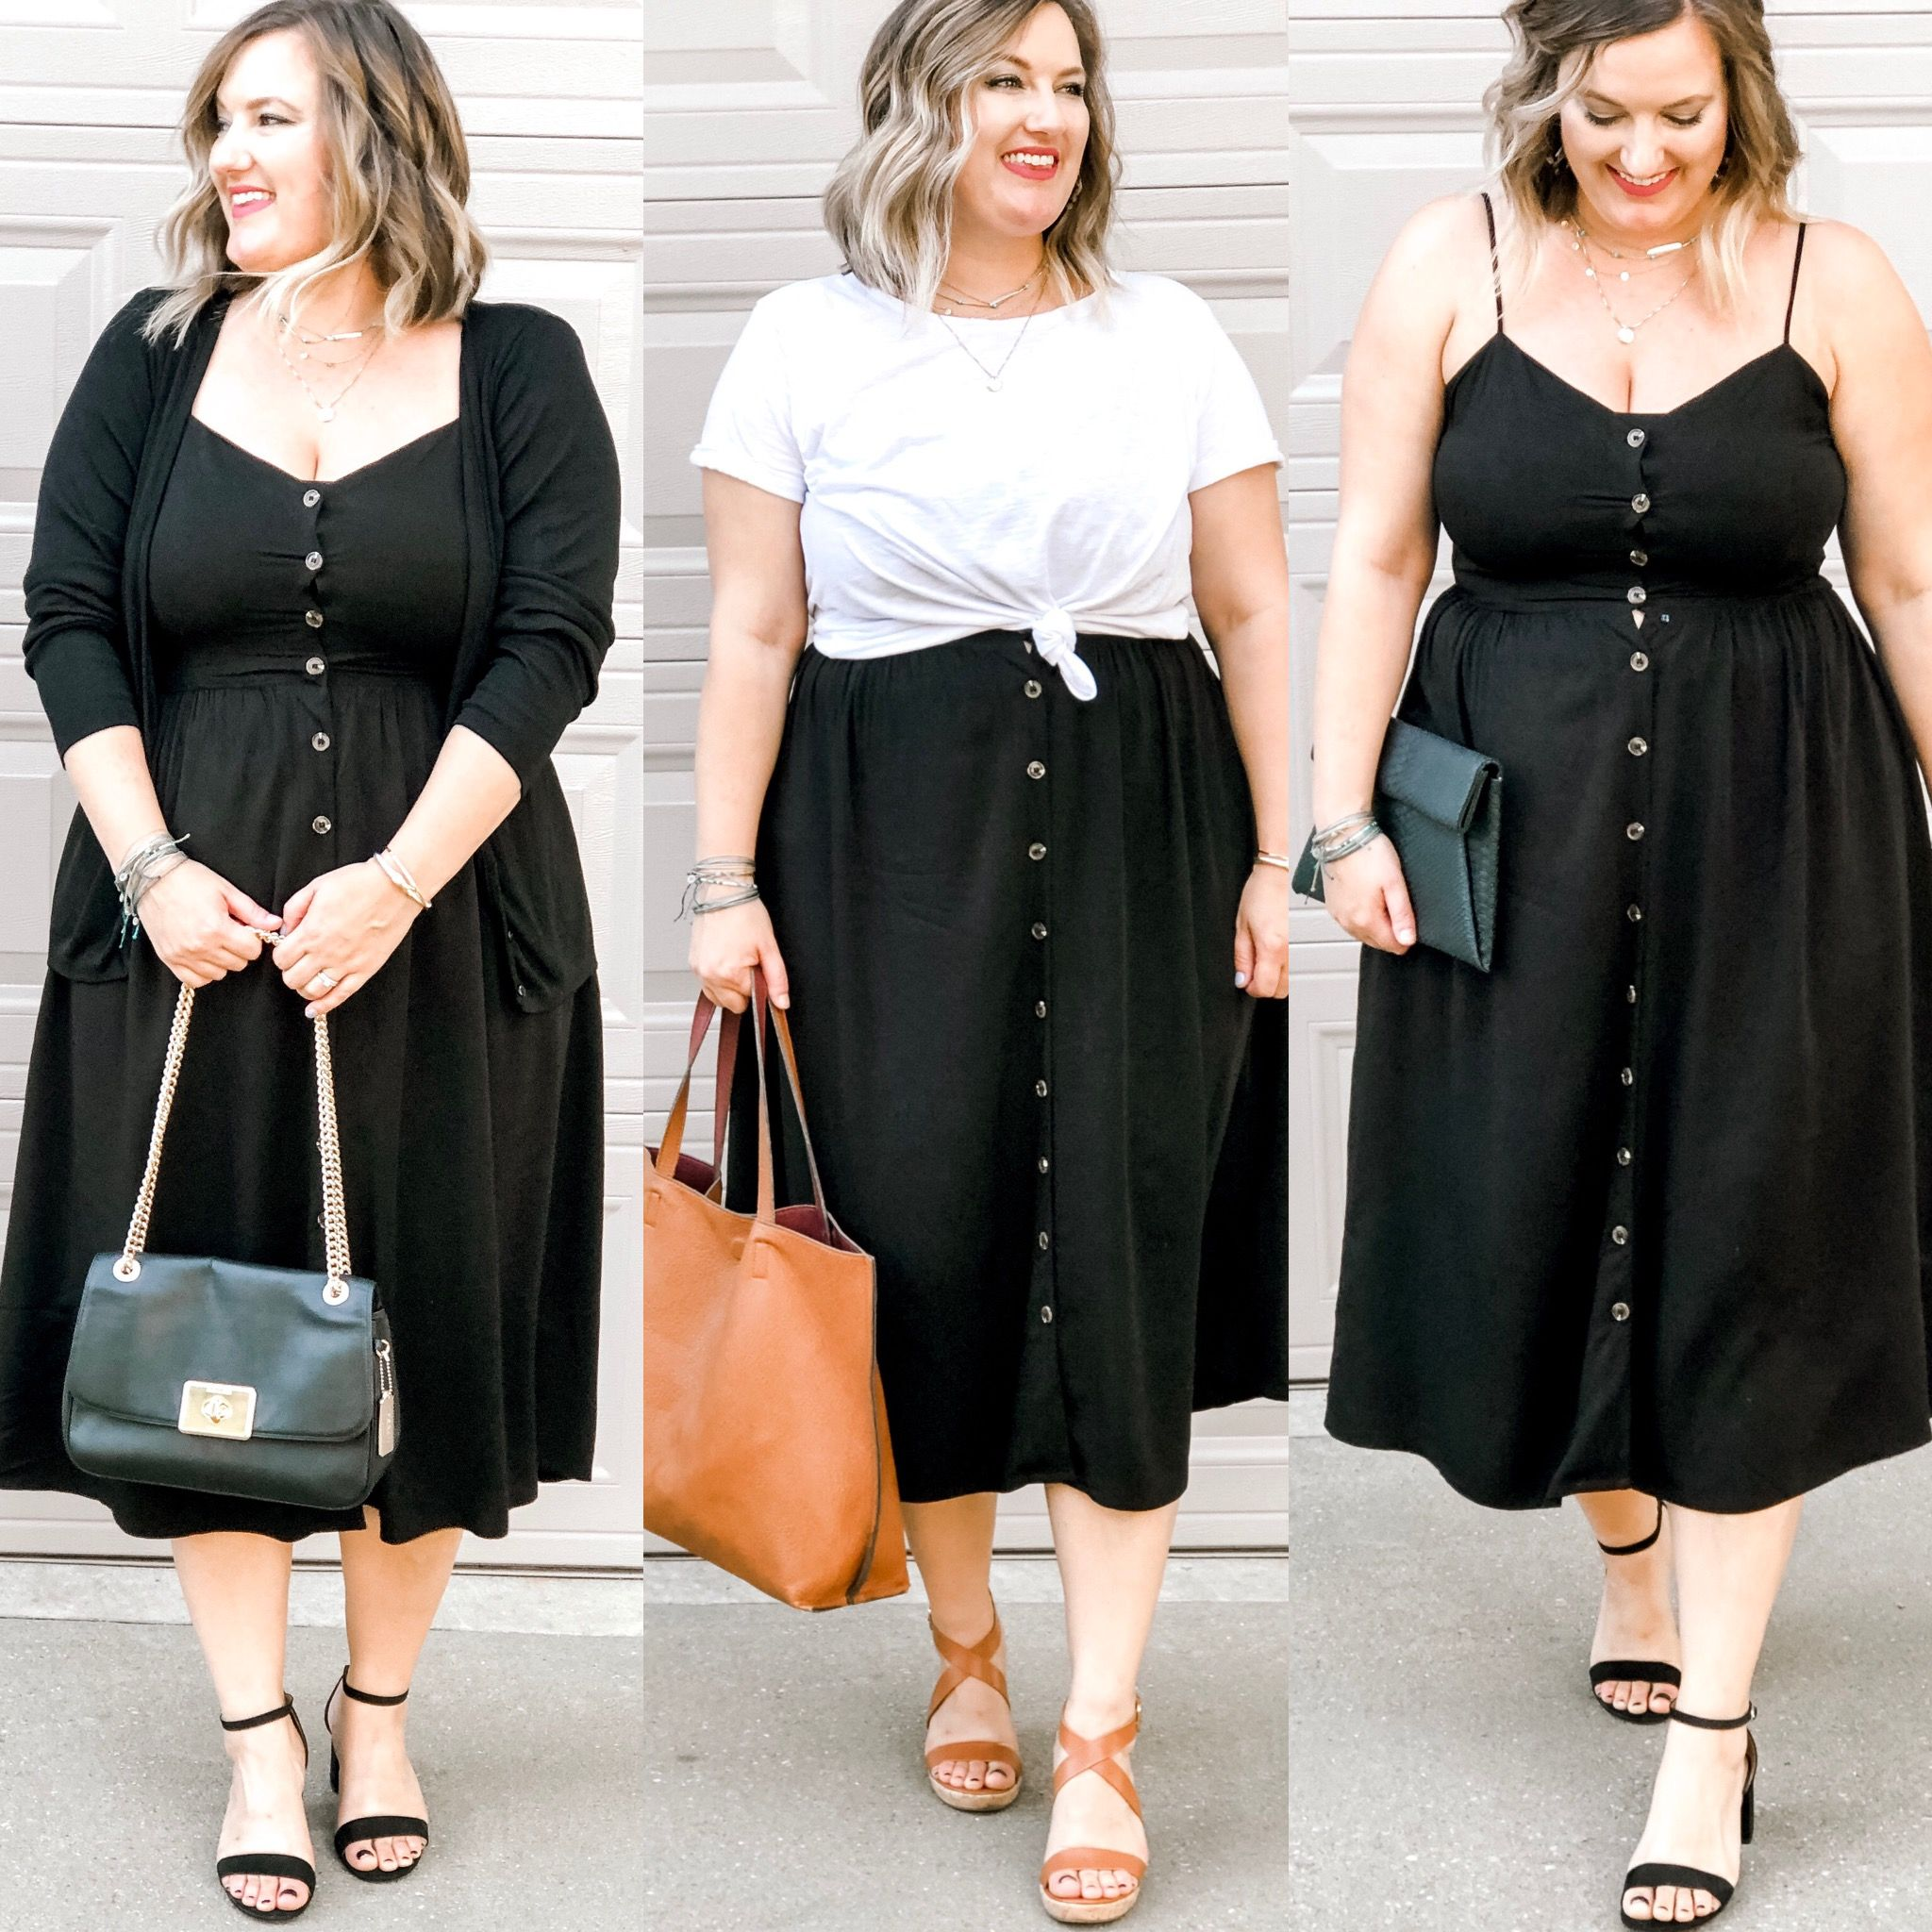 3 Ways To Style A Lbd This Summer Curvy Girl Outfits Plus Size Fashion For Women Size Fashion